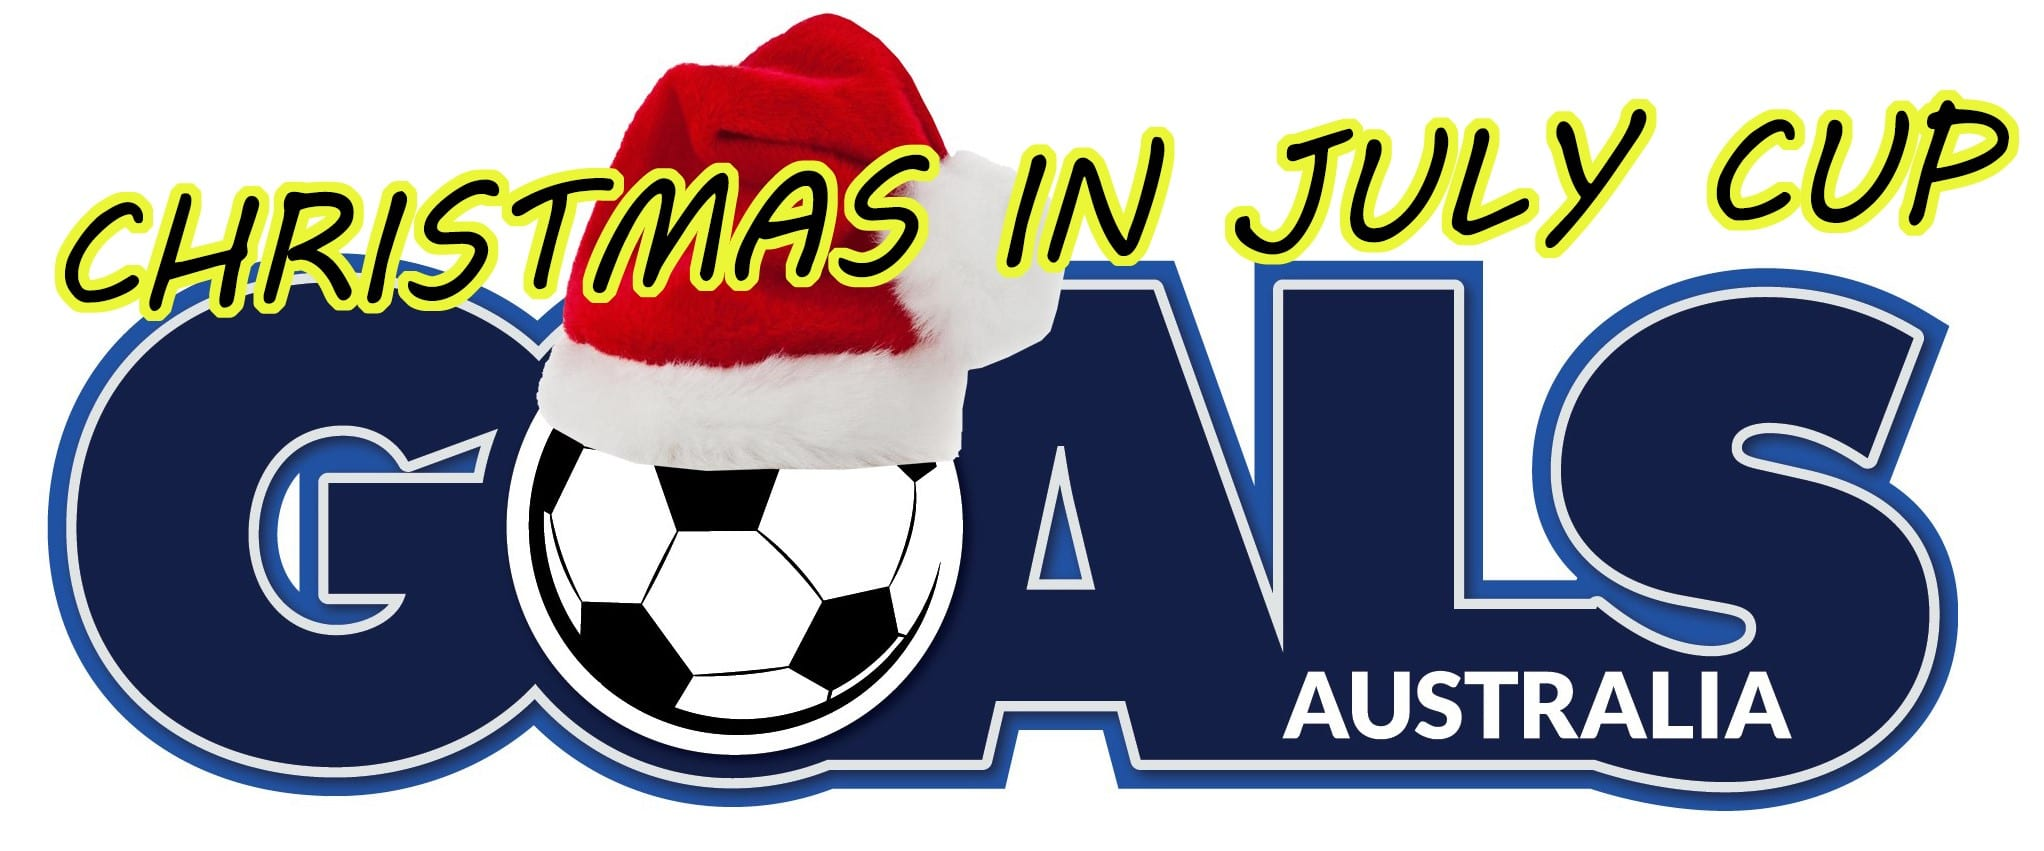 Christmas In July Australia 2019.Xmas In July Cup Homepage Goals Australia